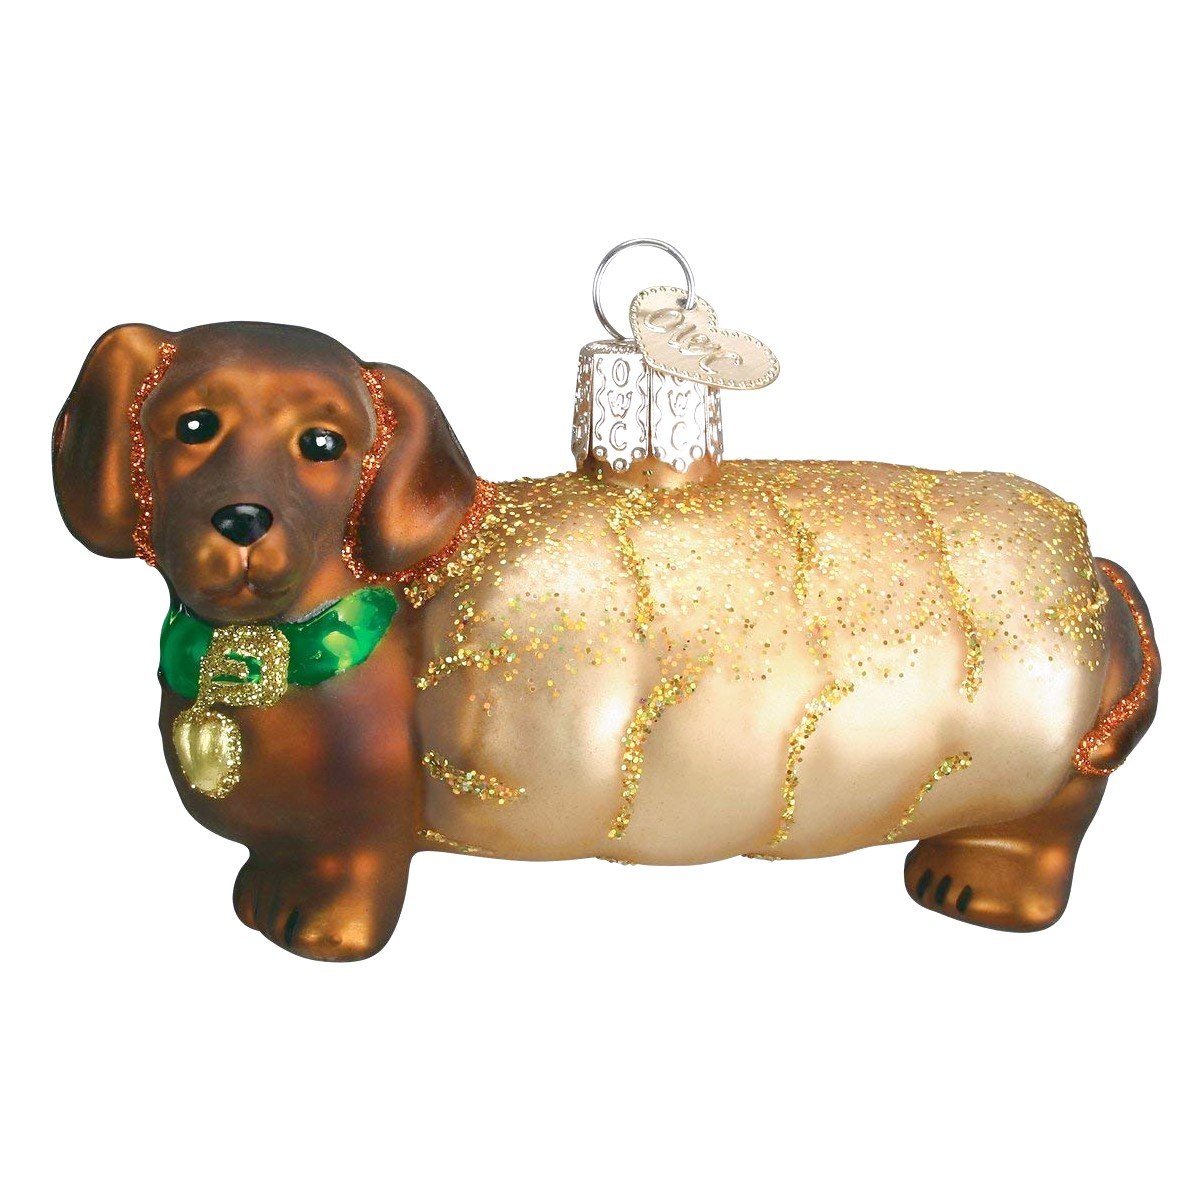 Dachshund Christmas Decorations